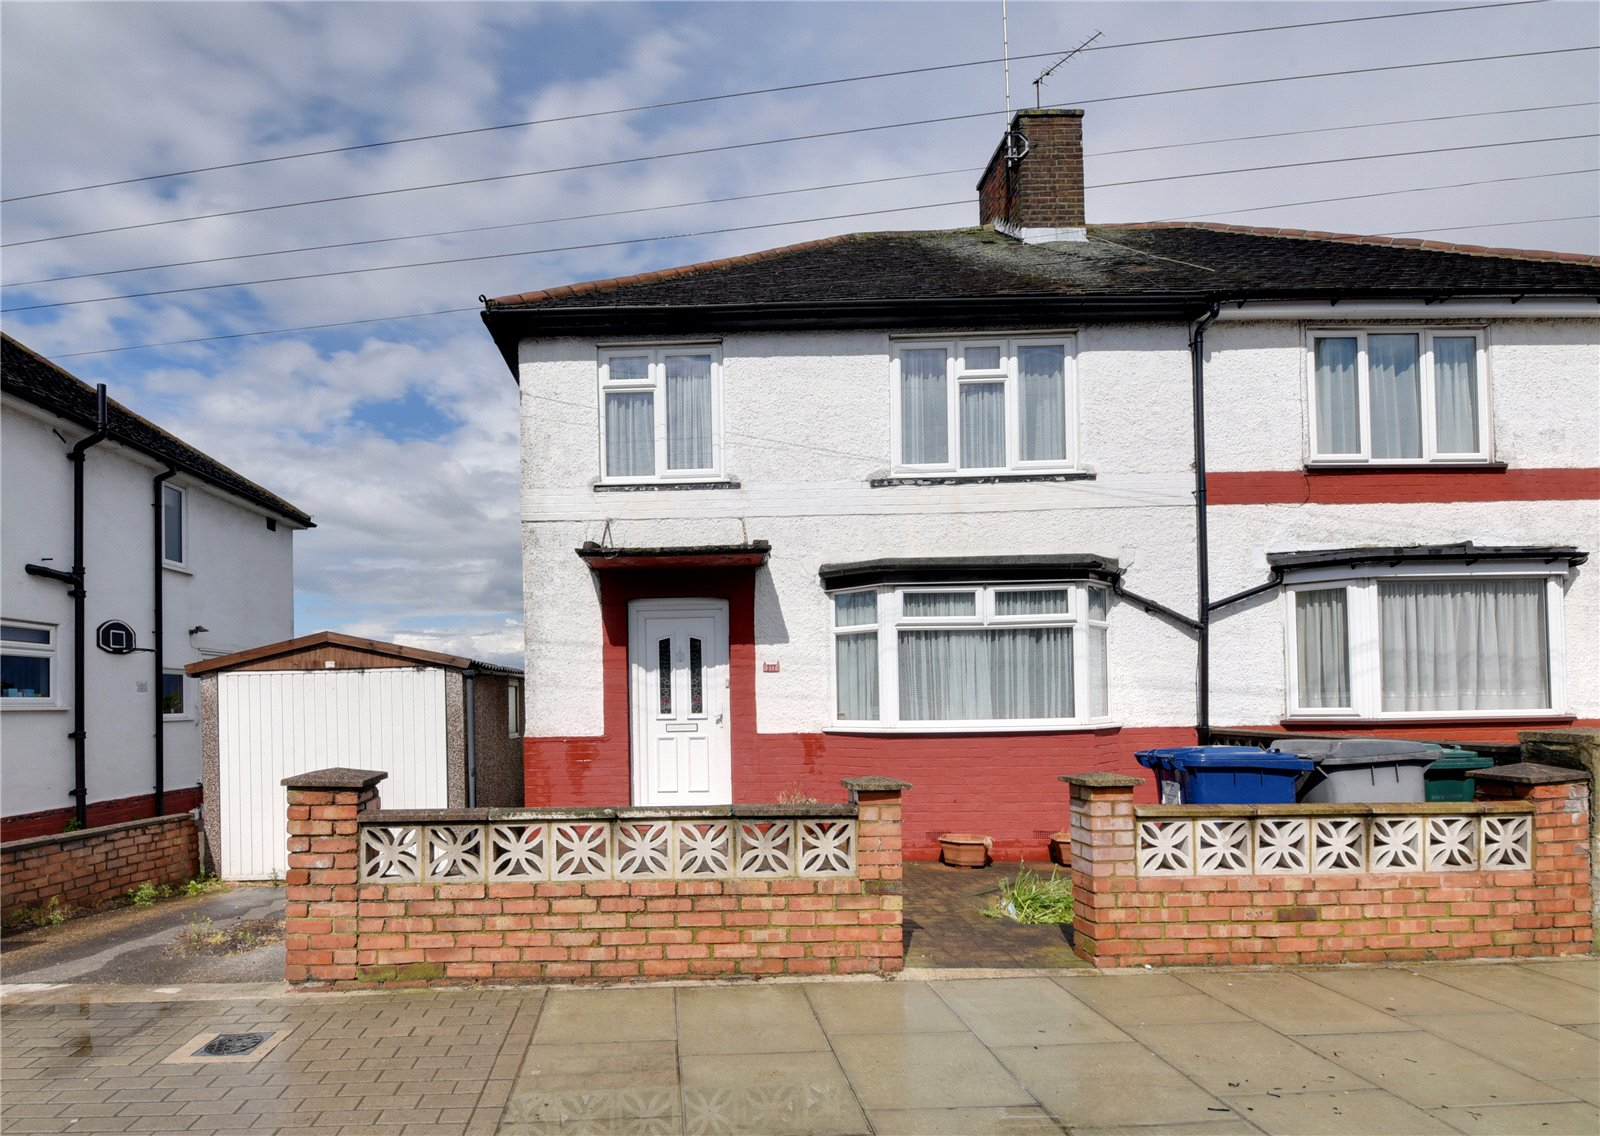 3 bed house for sale in Whetstone, N20 0DG, N20